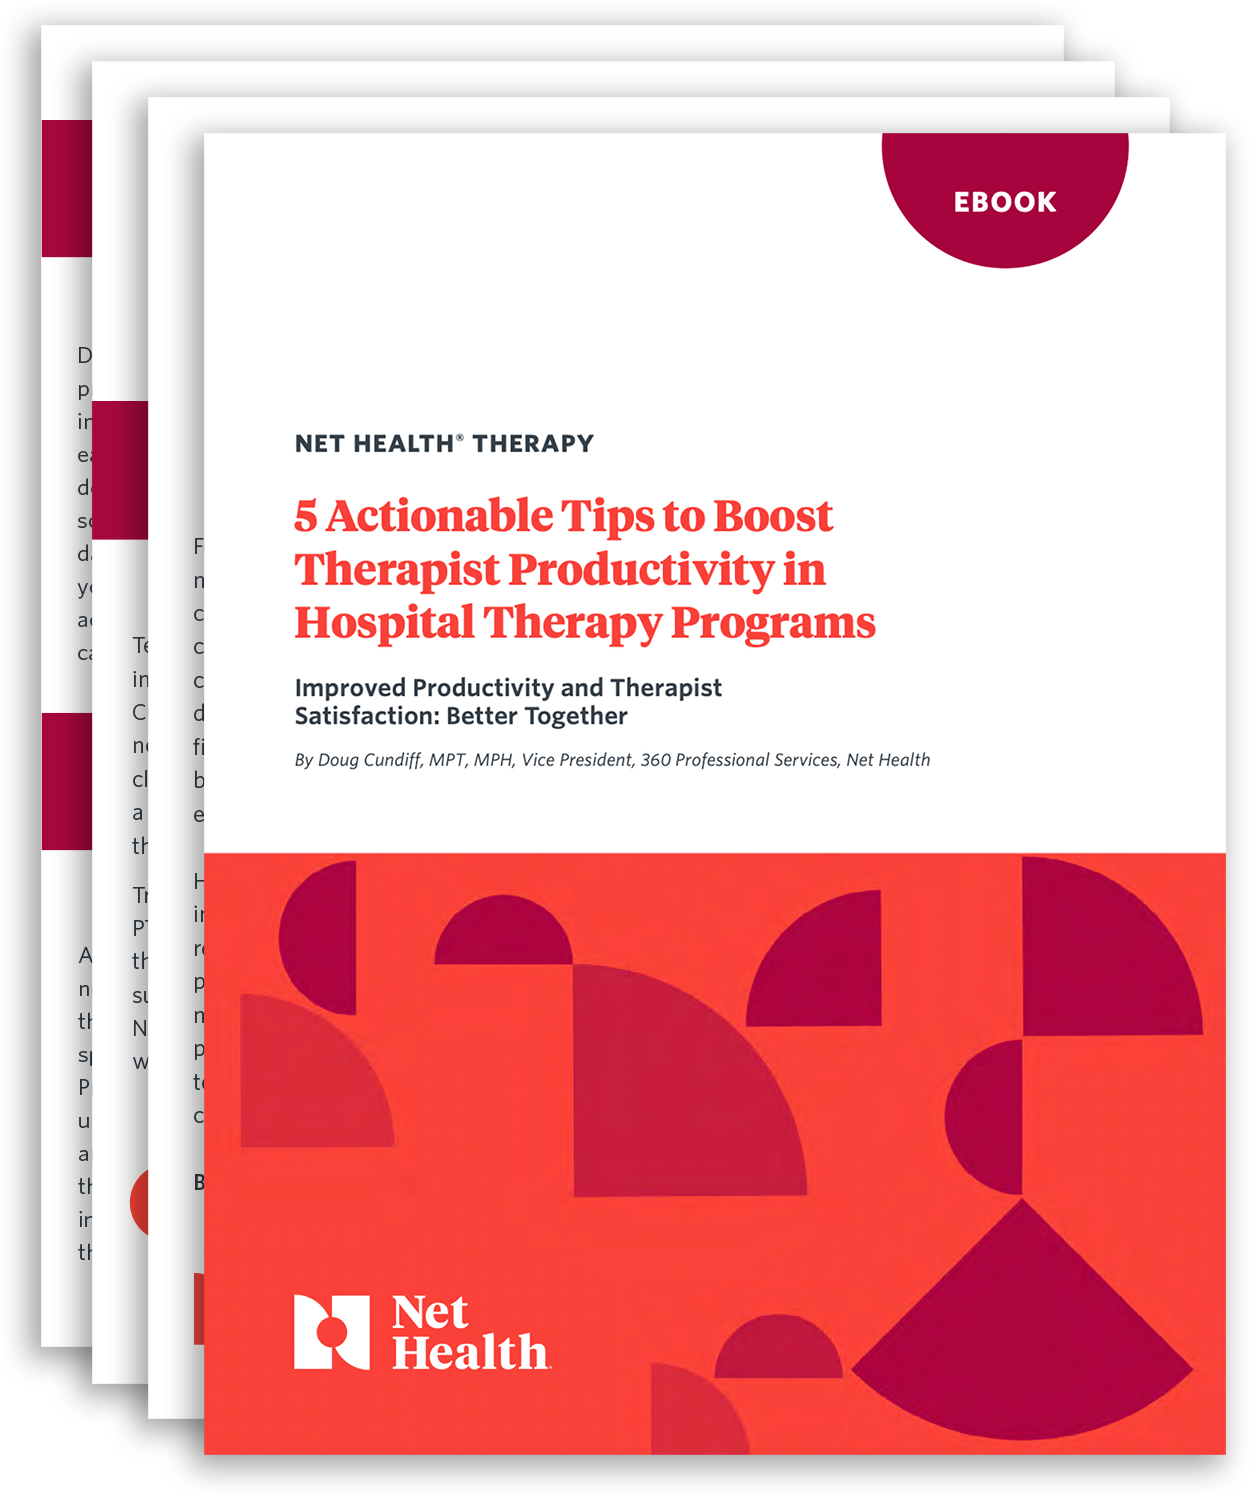 5 Actionable Tips to Boost Therapist Productivity in Hospital Therapy Programs